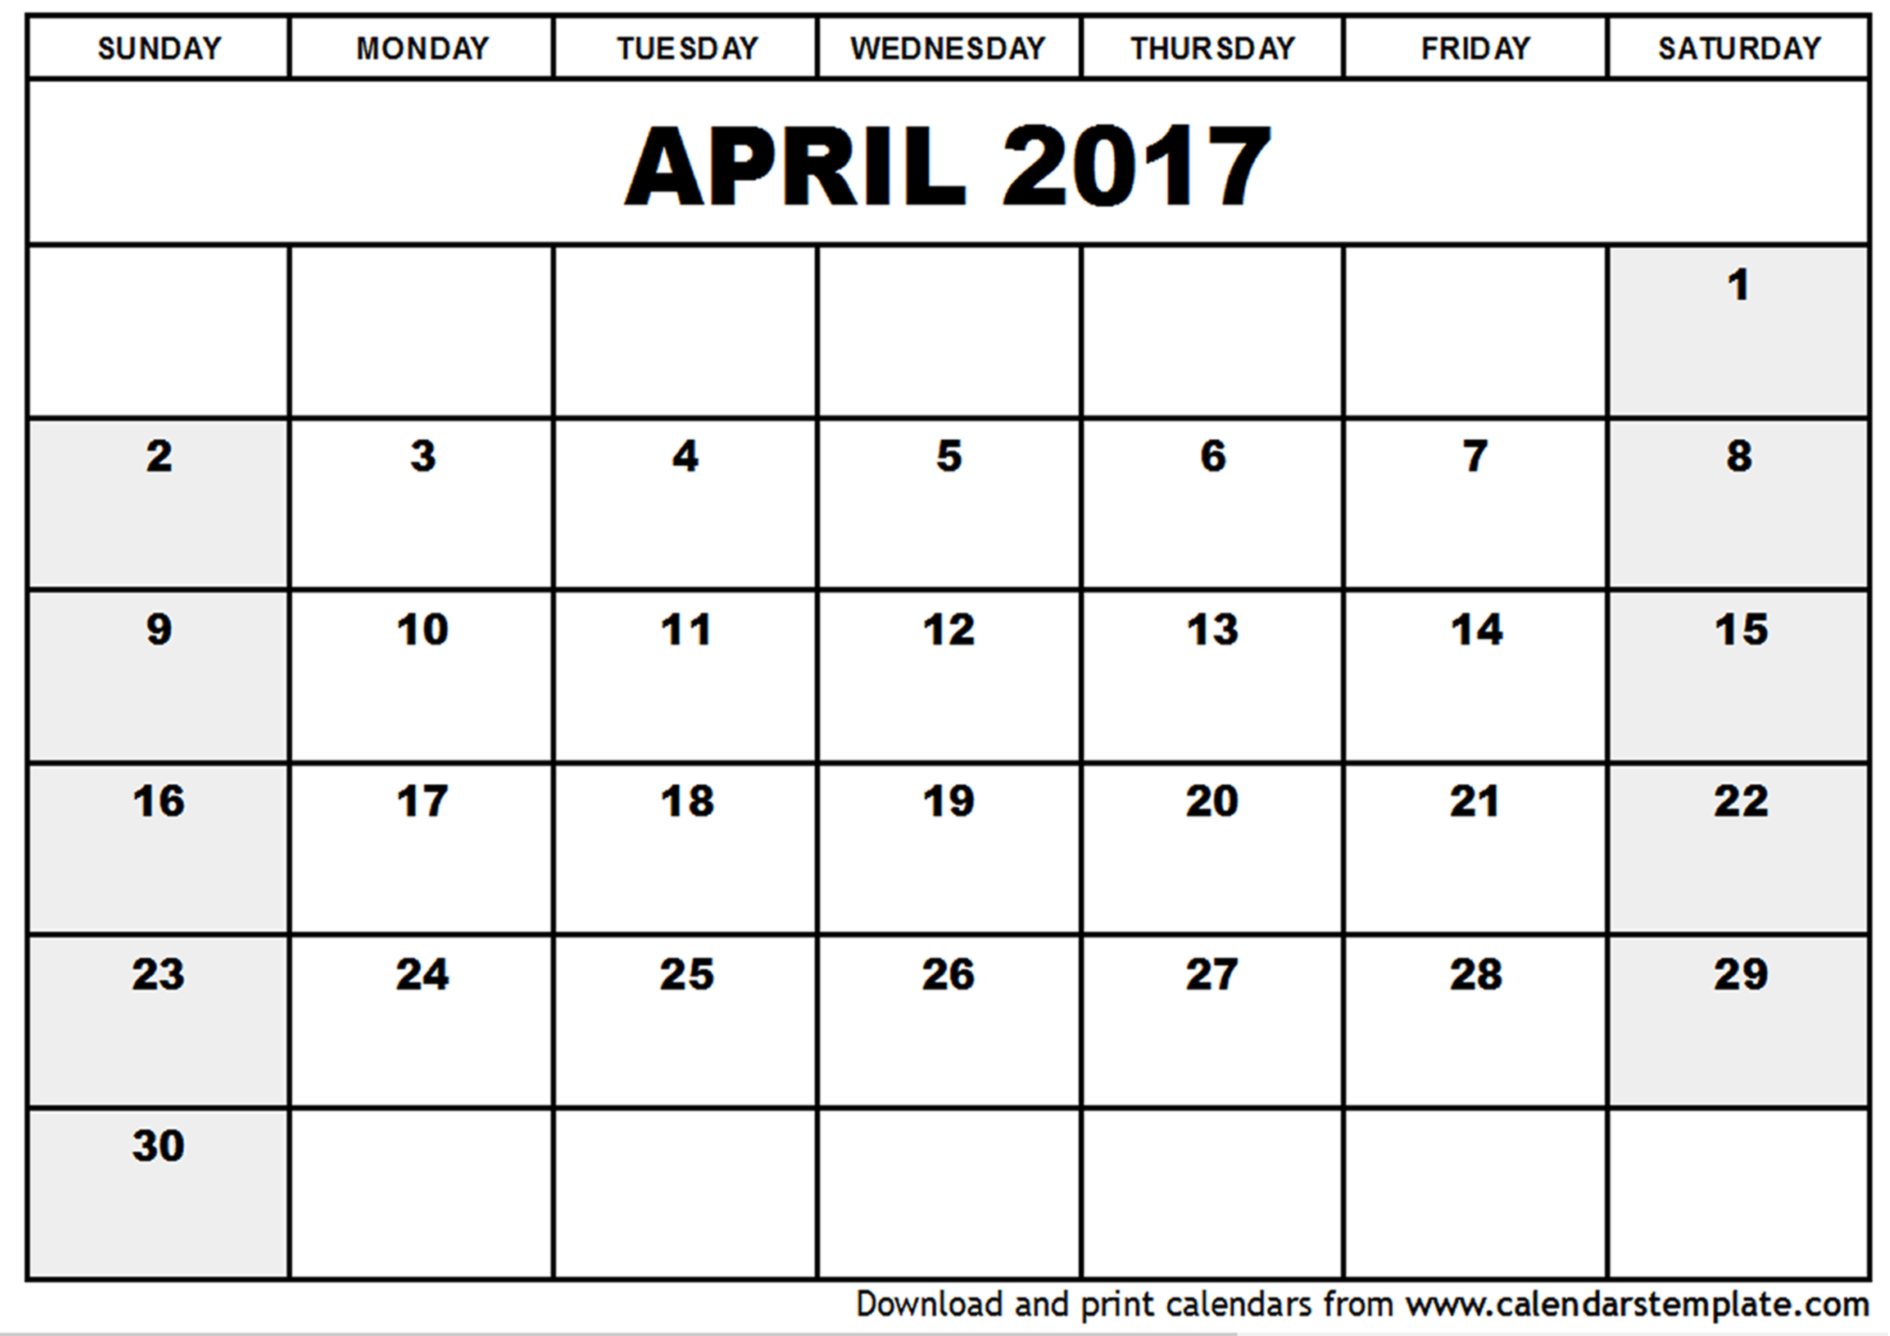 April 2017 Calendar Excel | monthly calendar printable